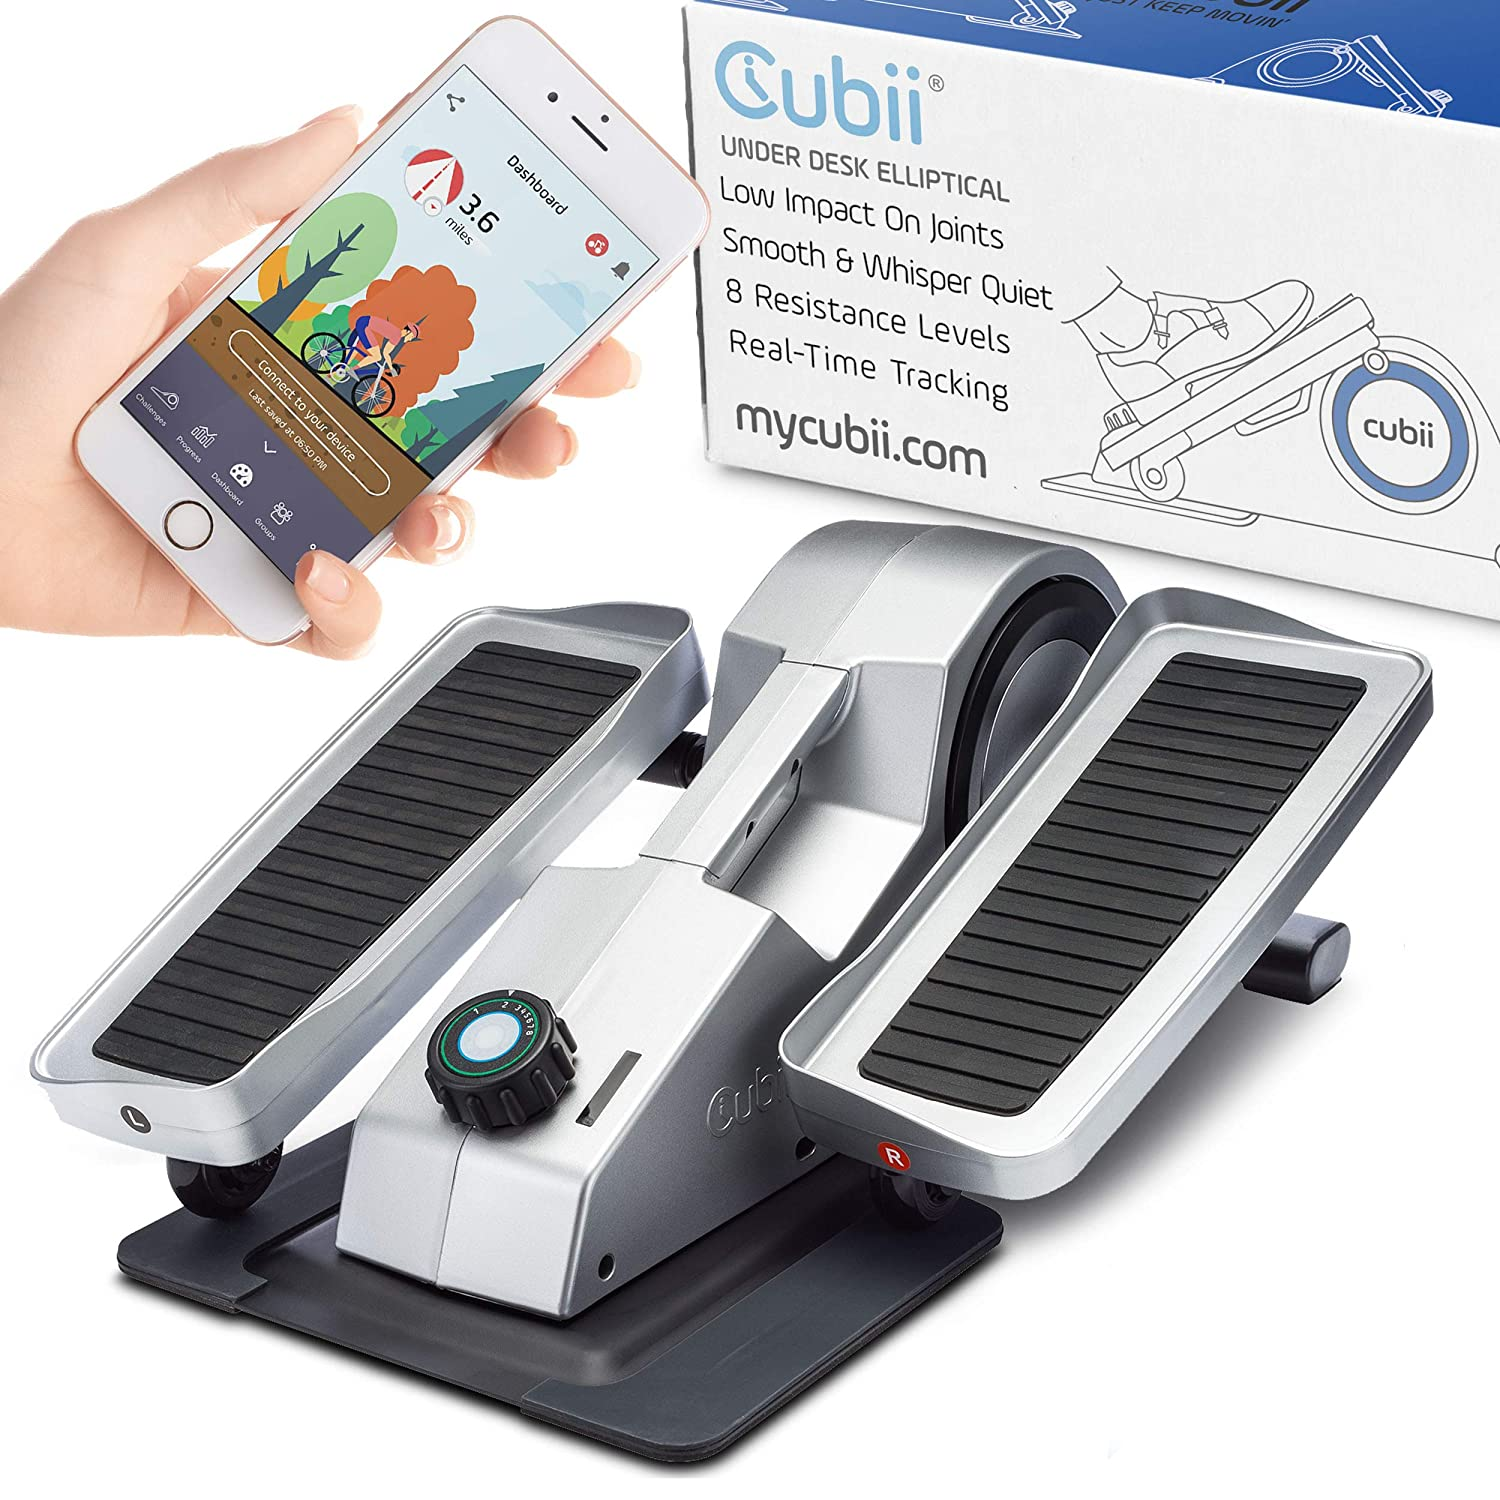 Cubii Pro Under Desk Elliptical – Best Under-Desk Elliptical